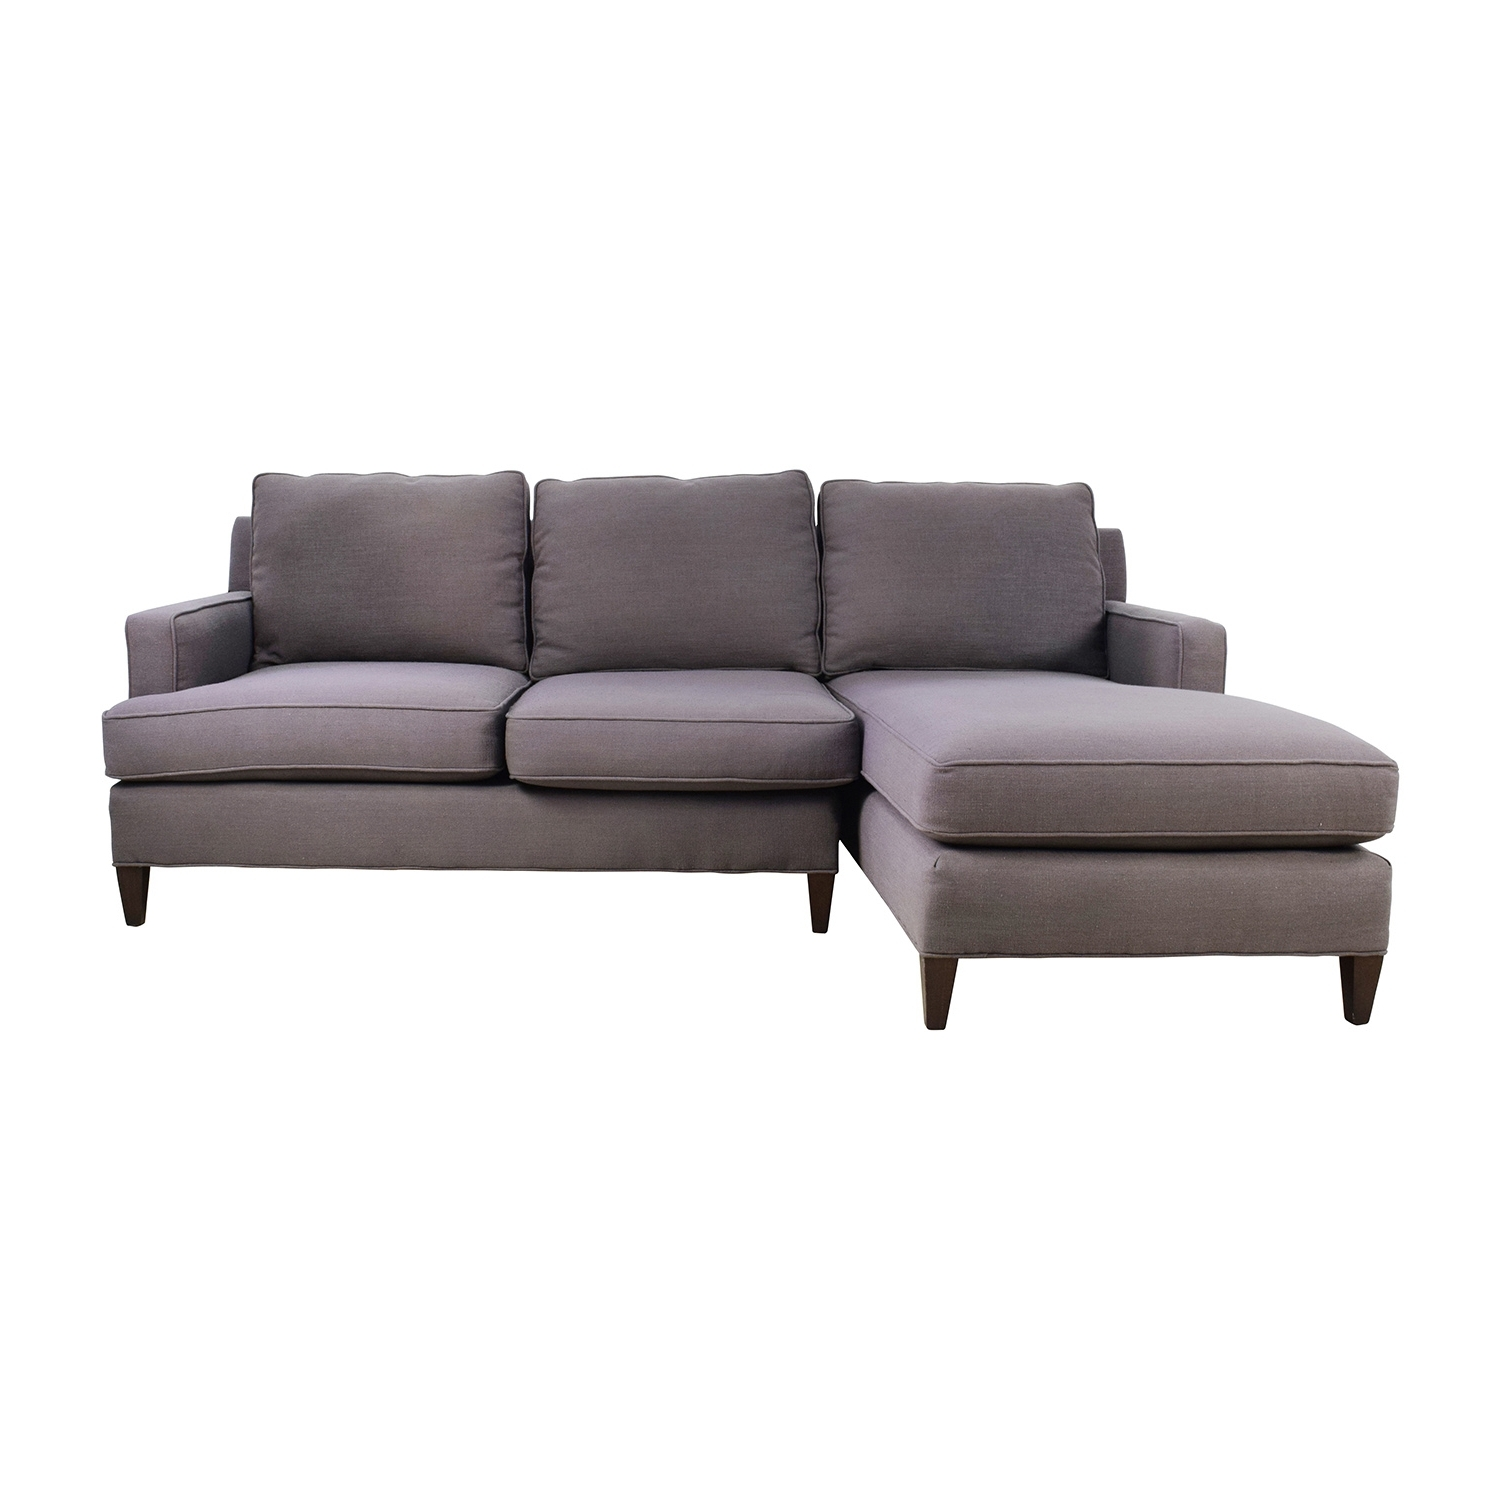 [%81% Off – Mitchell Gold & Bob Williams Mitchell Gold + Bob Intended For Recent Charlotte Sectional Sofas|Charlotte Sectional Sofas Within Latest 81% Off – Mitchell Gold & Bob Williams Mitchell Gold + Bob|Favorite Charlotte Sectional Sofas Inside 81% Off – Mitchell Gold & Bob Williams Mitchell Gold + Bob|Recent 81% Off – Mitchell Gold & Bob Williams Mitchell Gold + Bob Inside Charlotte Sectional Sofas%] (View 1 of 20)